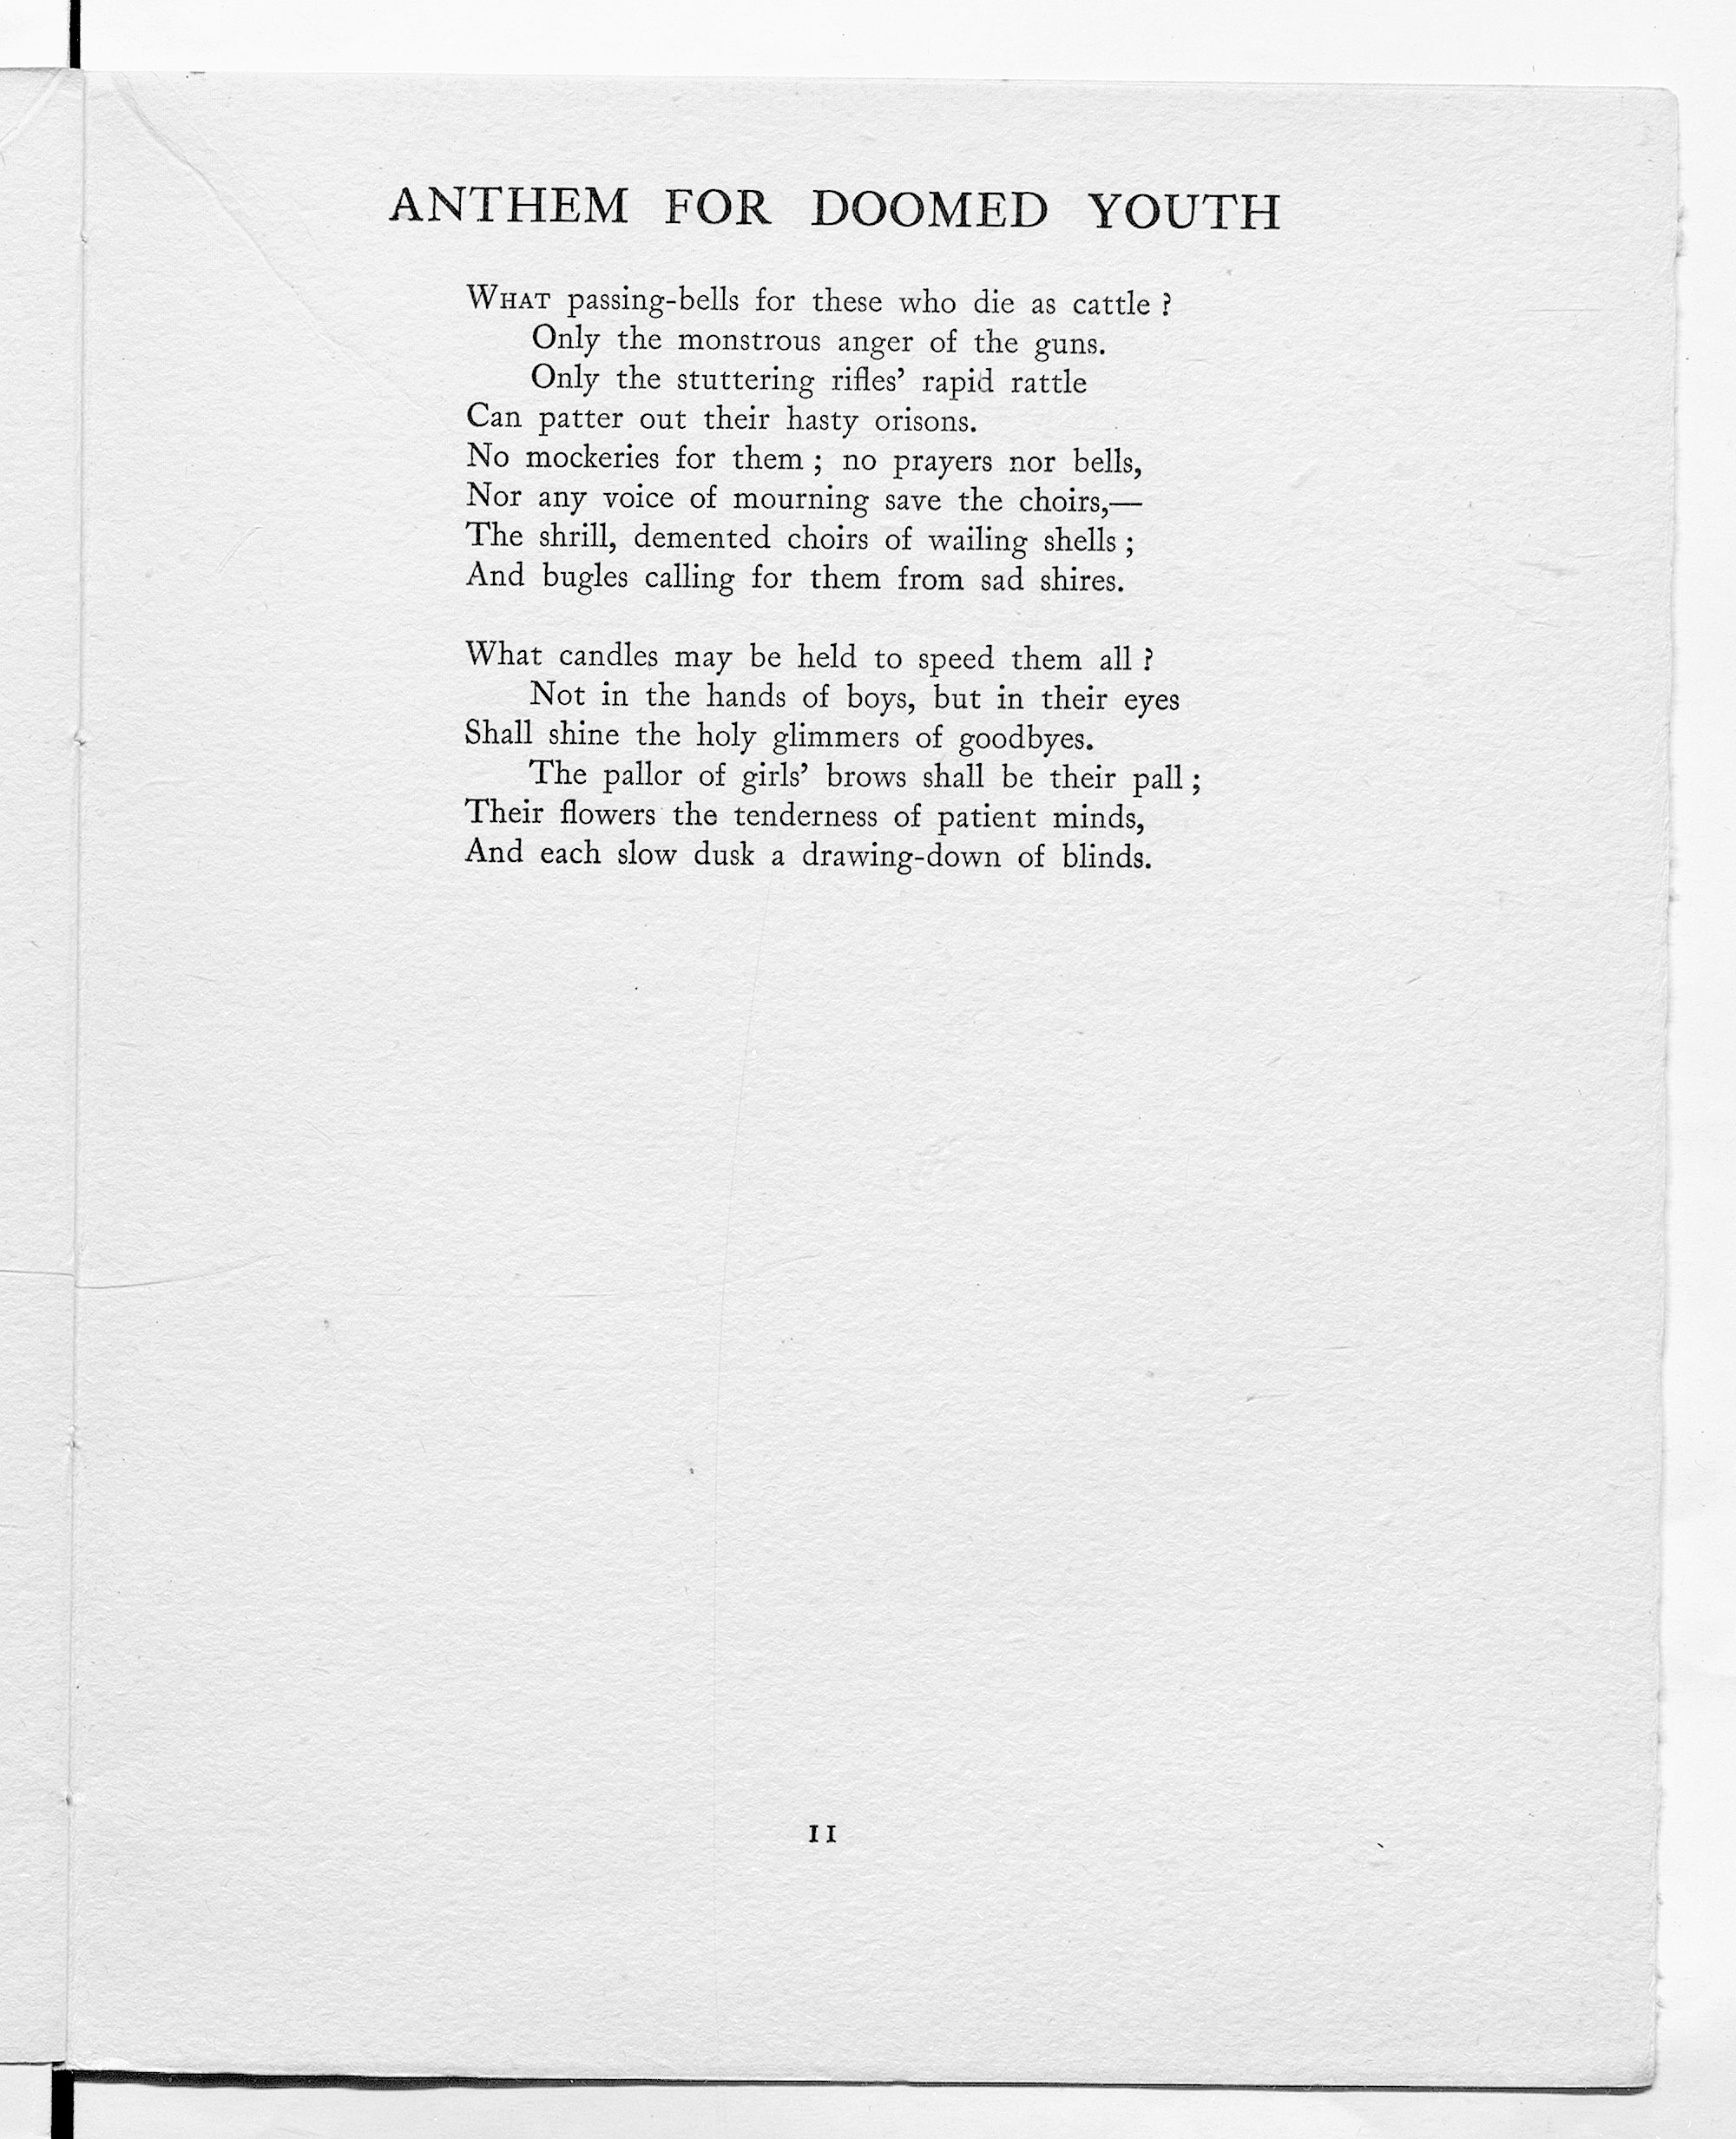 analytical essay on wilfred owens war Critical analysis of wilfred owen's dulce et decorum est wilfred owen's poem dulce et decorum est, is a powerful poem with graphical lifelike images on the reality of war it is blatantly apparent that the author was a soldier who experienced some of the most gruesome images of war.